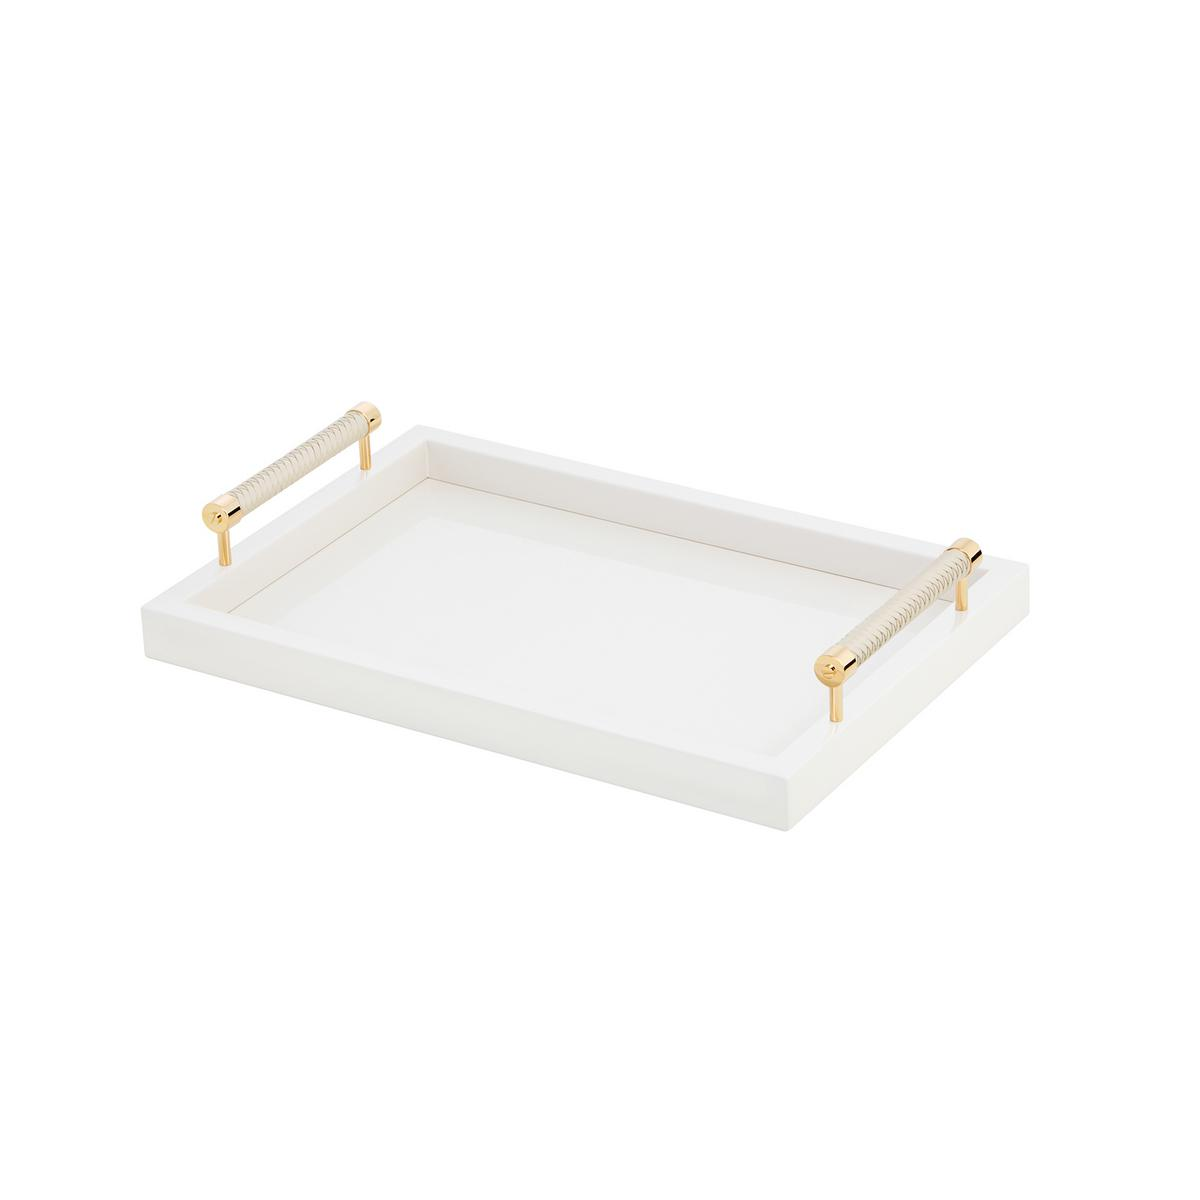 Graphic Tray Handcrafted From Ivory And: Riviere Lacquered Tray With Gold/leather Handles, Ivory